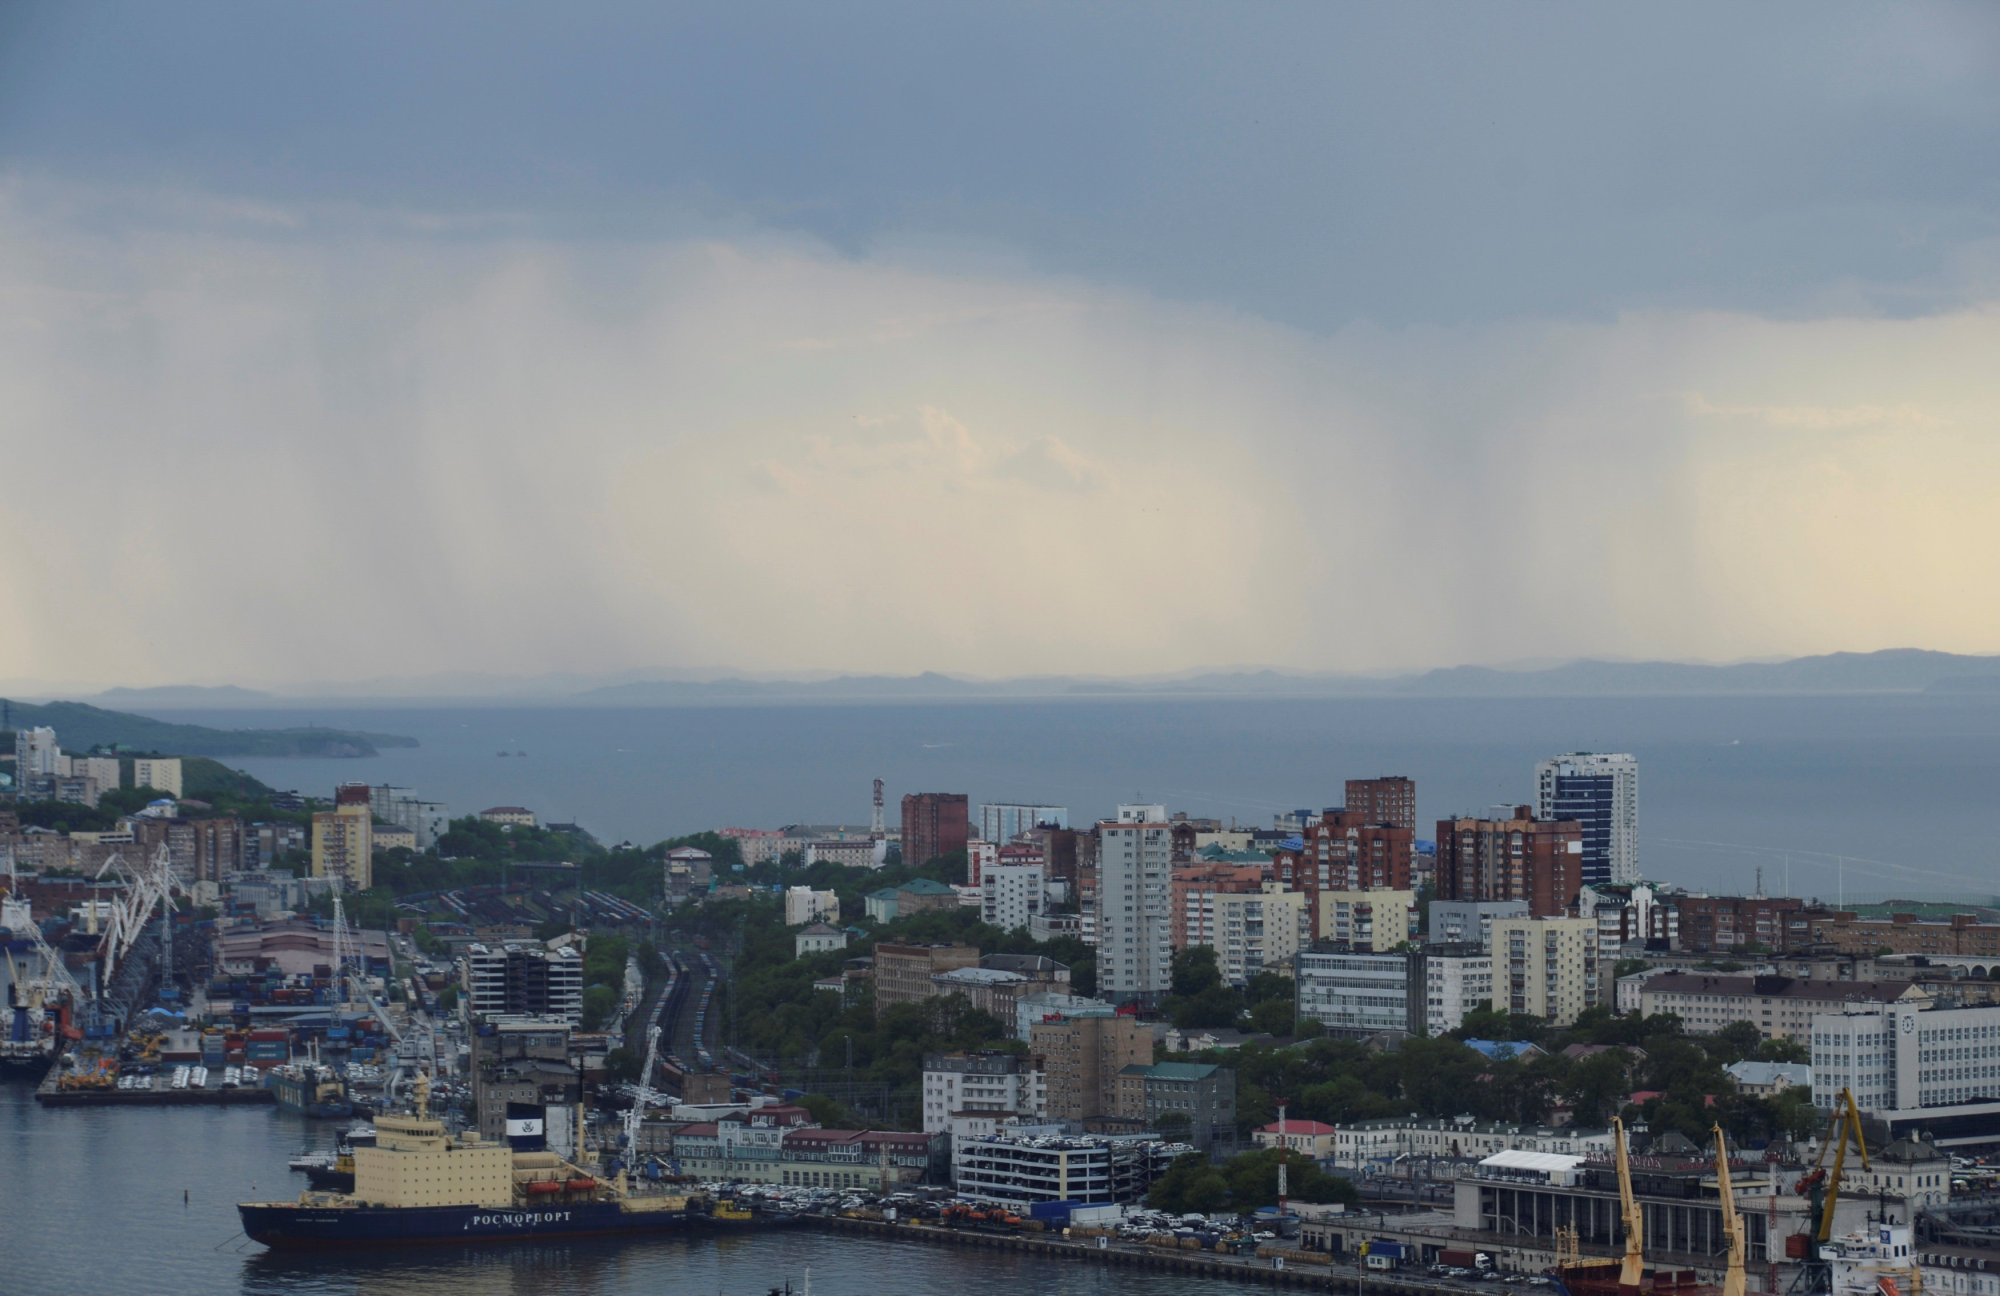 Rain clouds pass over a commercial port in Vladivostok, Russia, on June 8. North Korean ships sailing from Vladivostok and nearby Nakhodka appear to be evading U.N. sanctions. | REUTERS